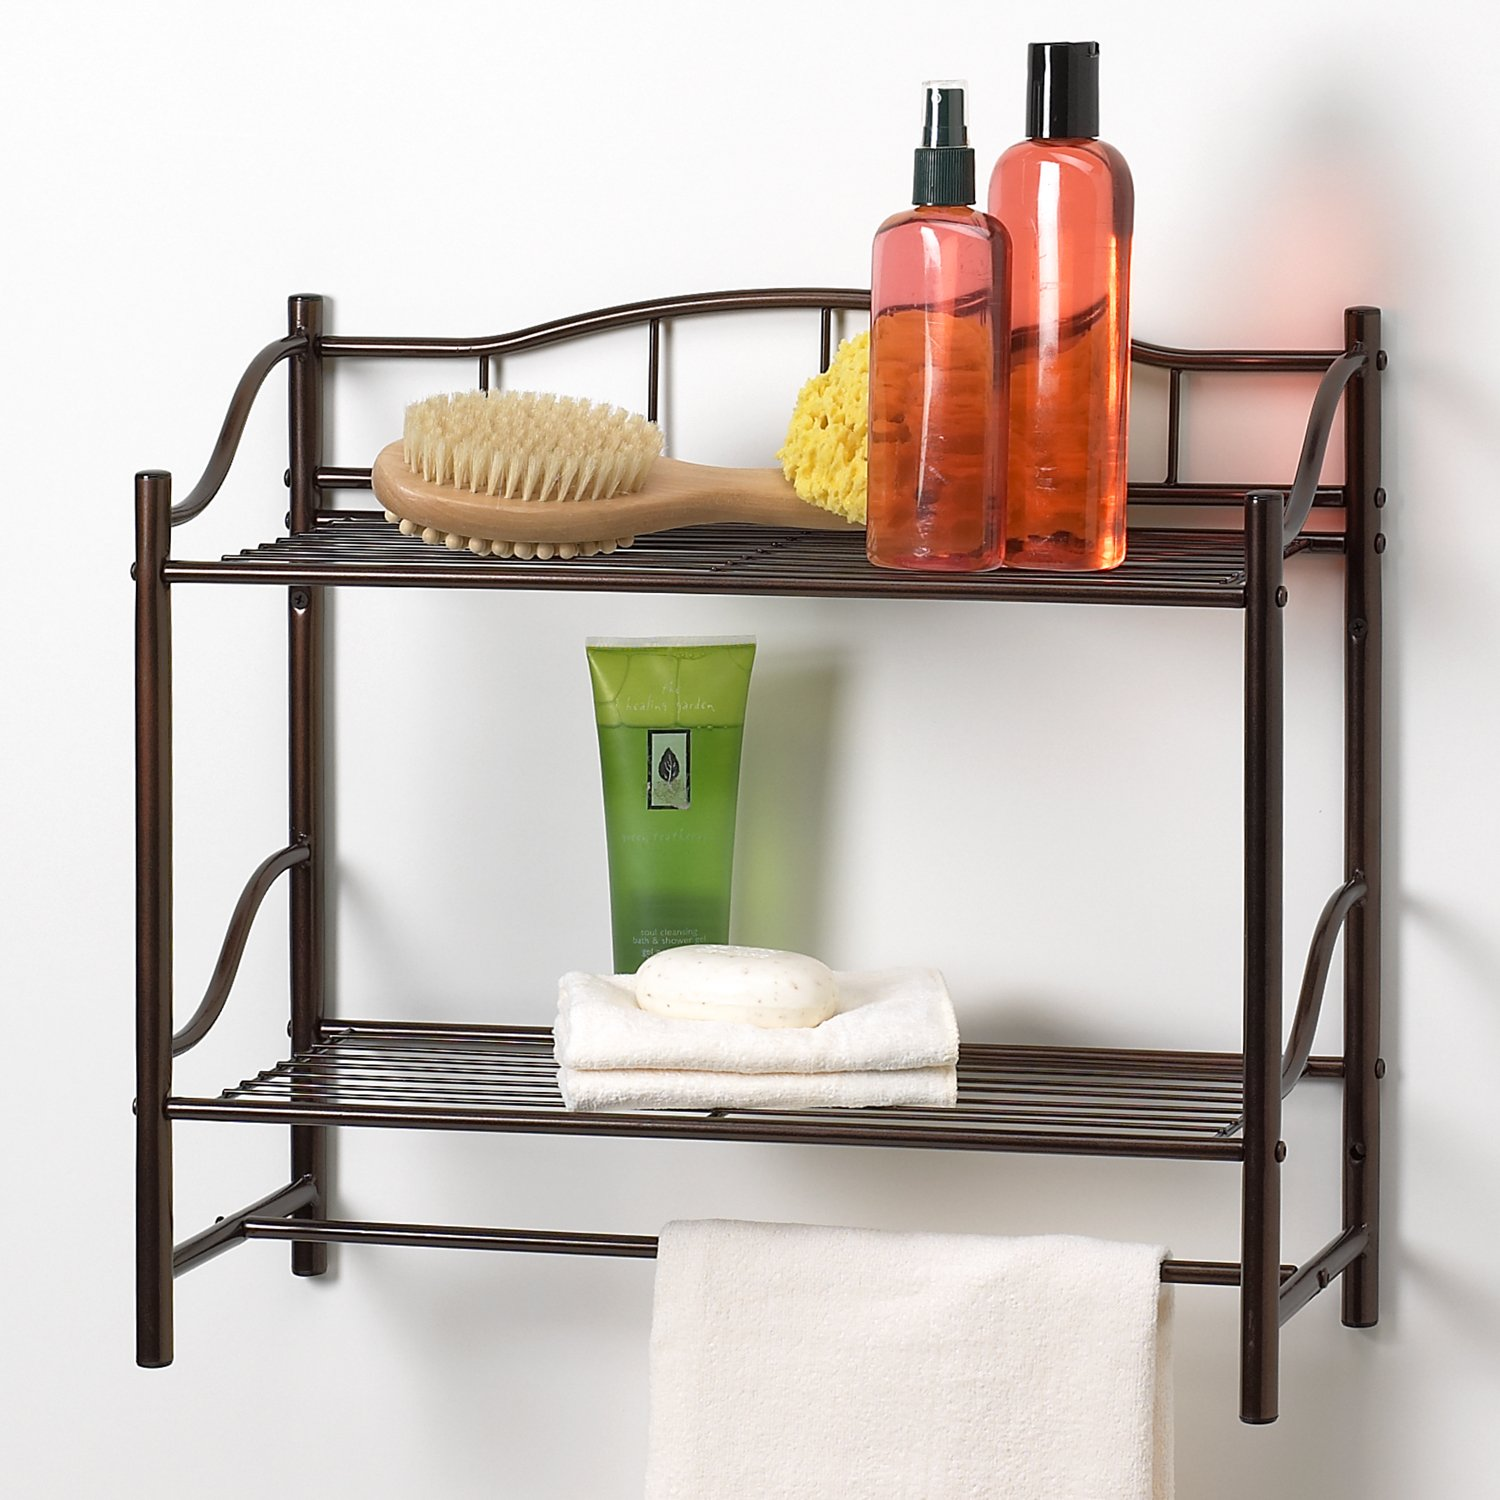 Creative Bath Products 20063-ORB Complete Collection 2 Shelf Wall Organizer with Towel Bar, Oil Rubbed Bronze by Creative Bath